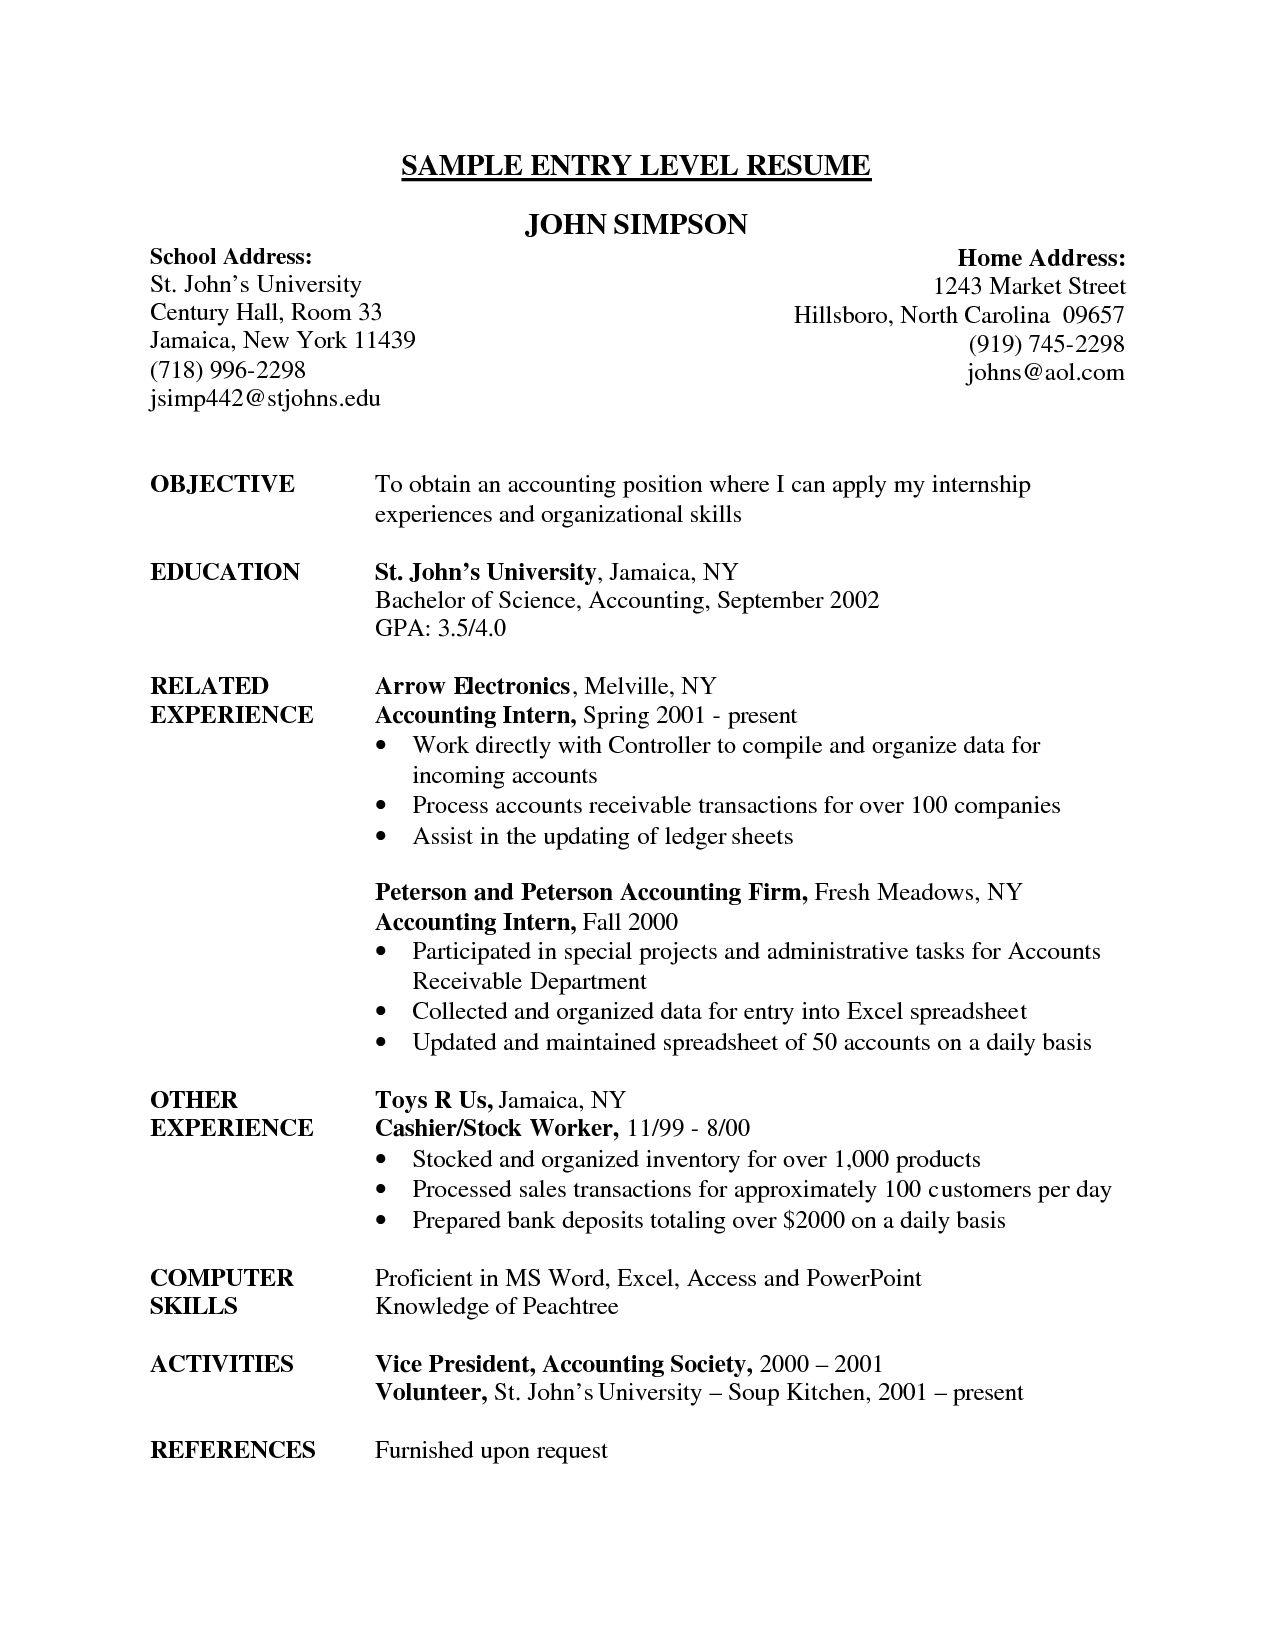 81 Excellent Beginner Resume Template with Graphics